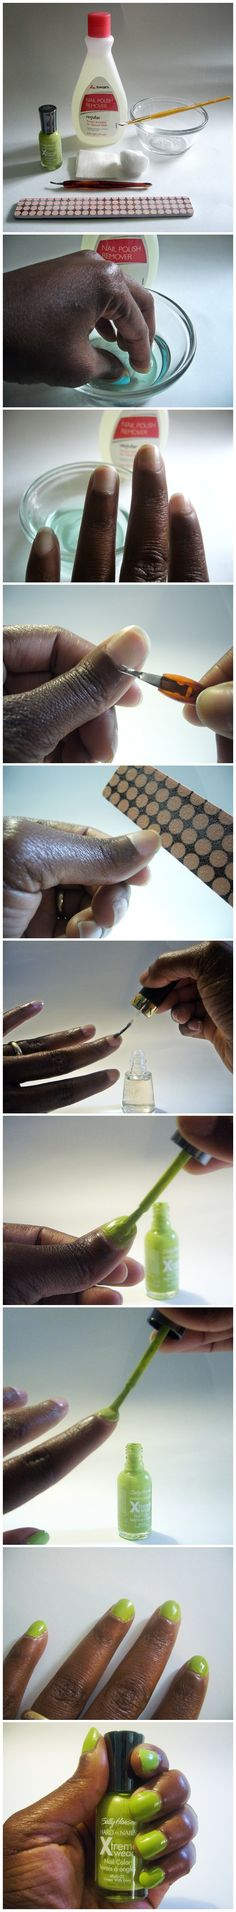 Tutorial --> EASY 5 STEP DIY MANICURE http://apronsandstilletos.blogspot.com/2013/06/easy-5-step-diy-manicure.html